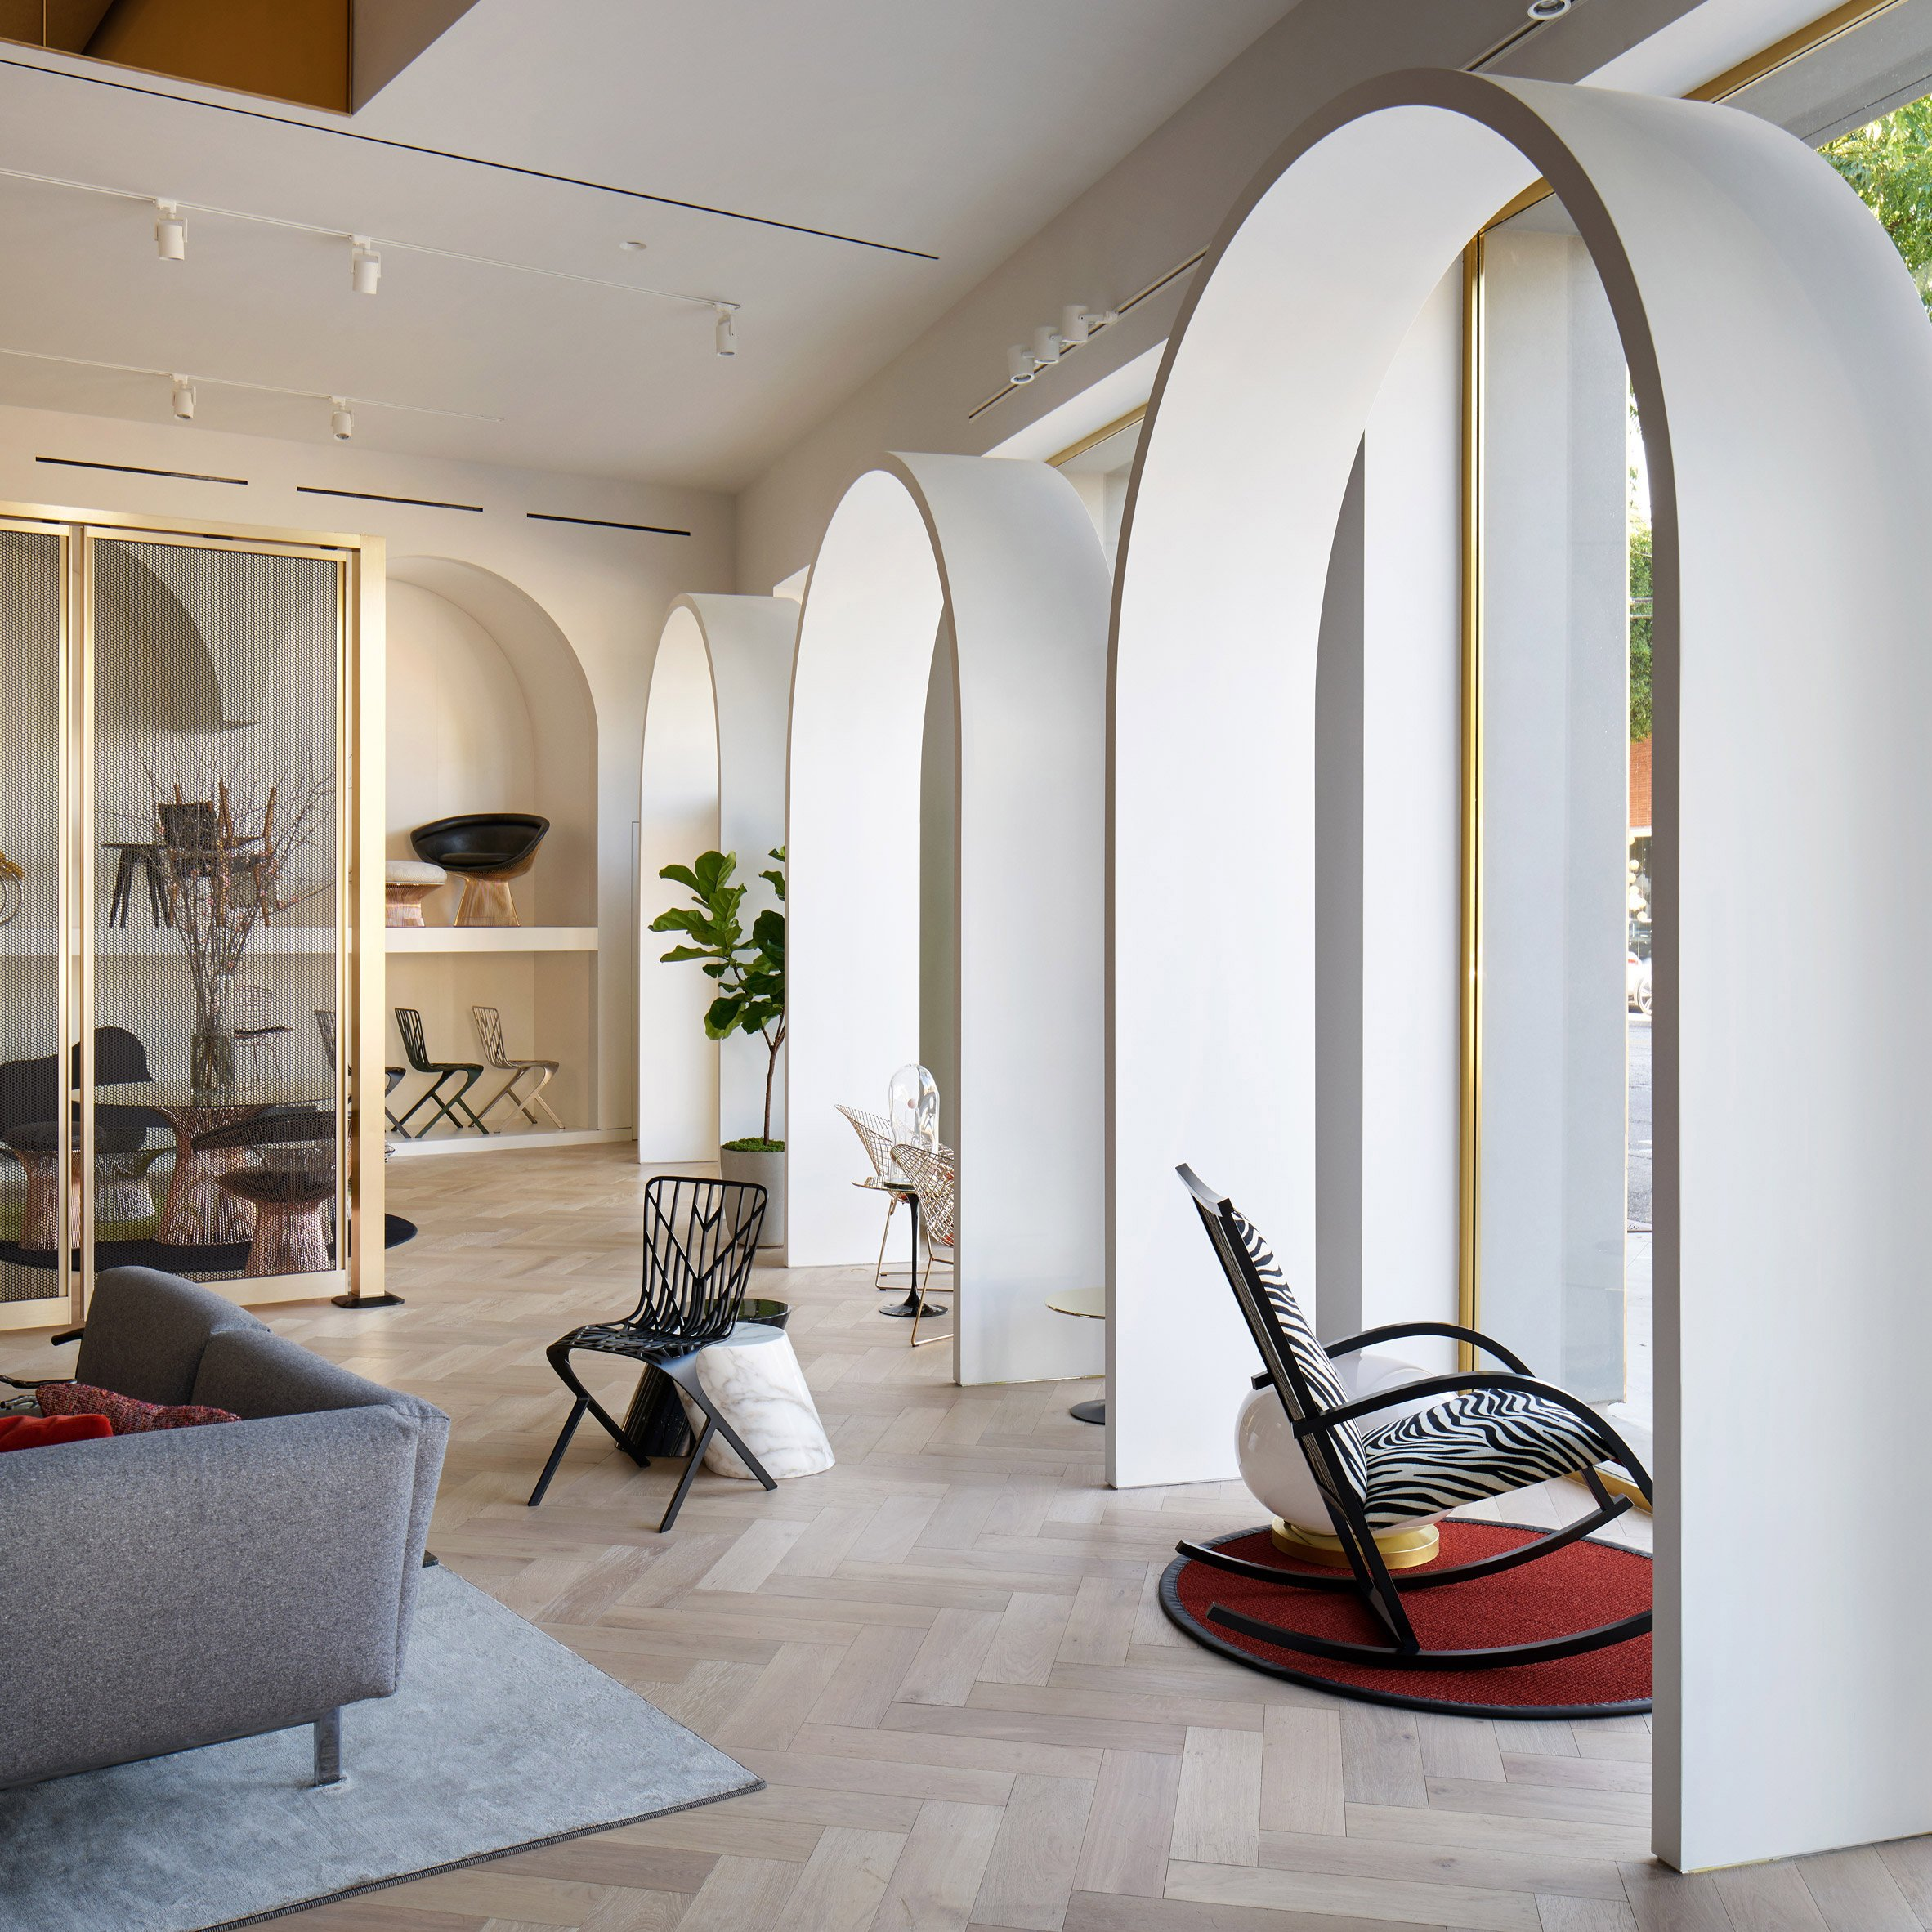 Architecture and design in Los Angeles | Dezeen